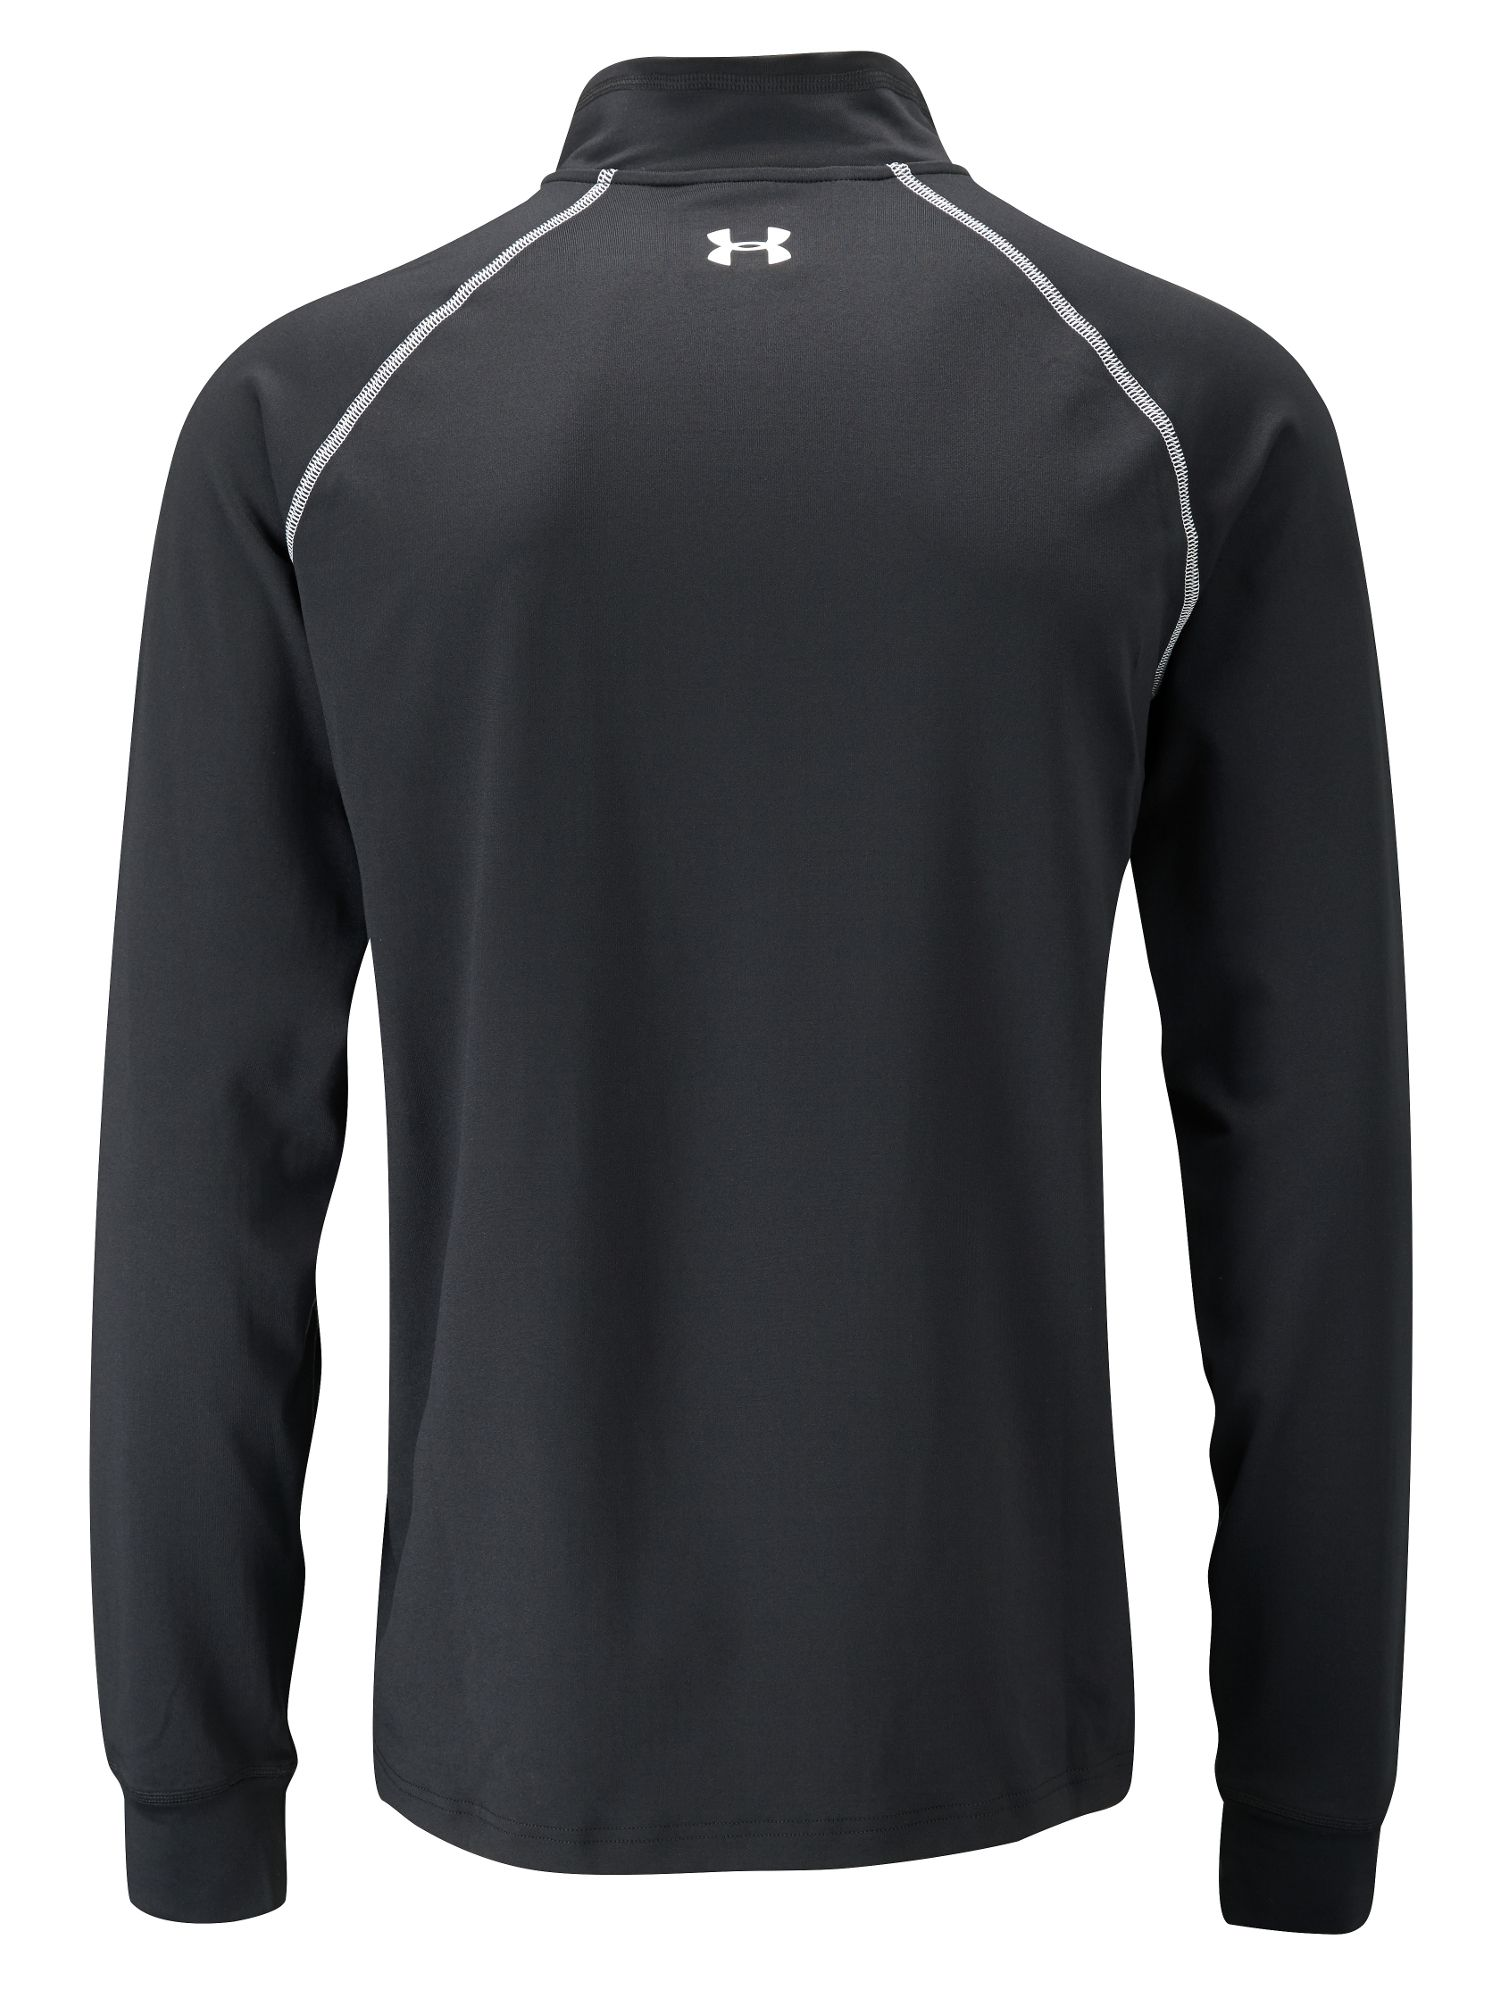 Coldgear infrared 1/4 zip